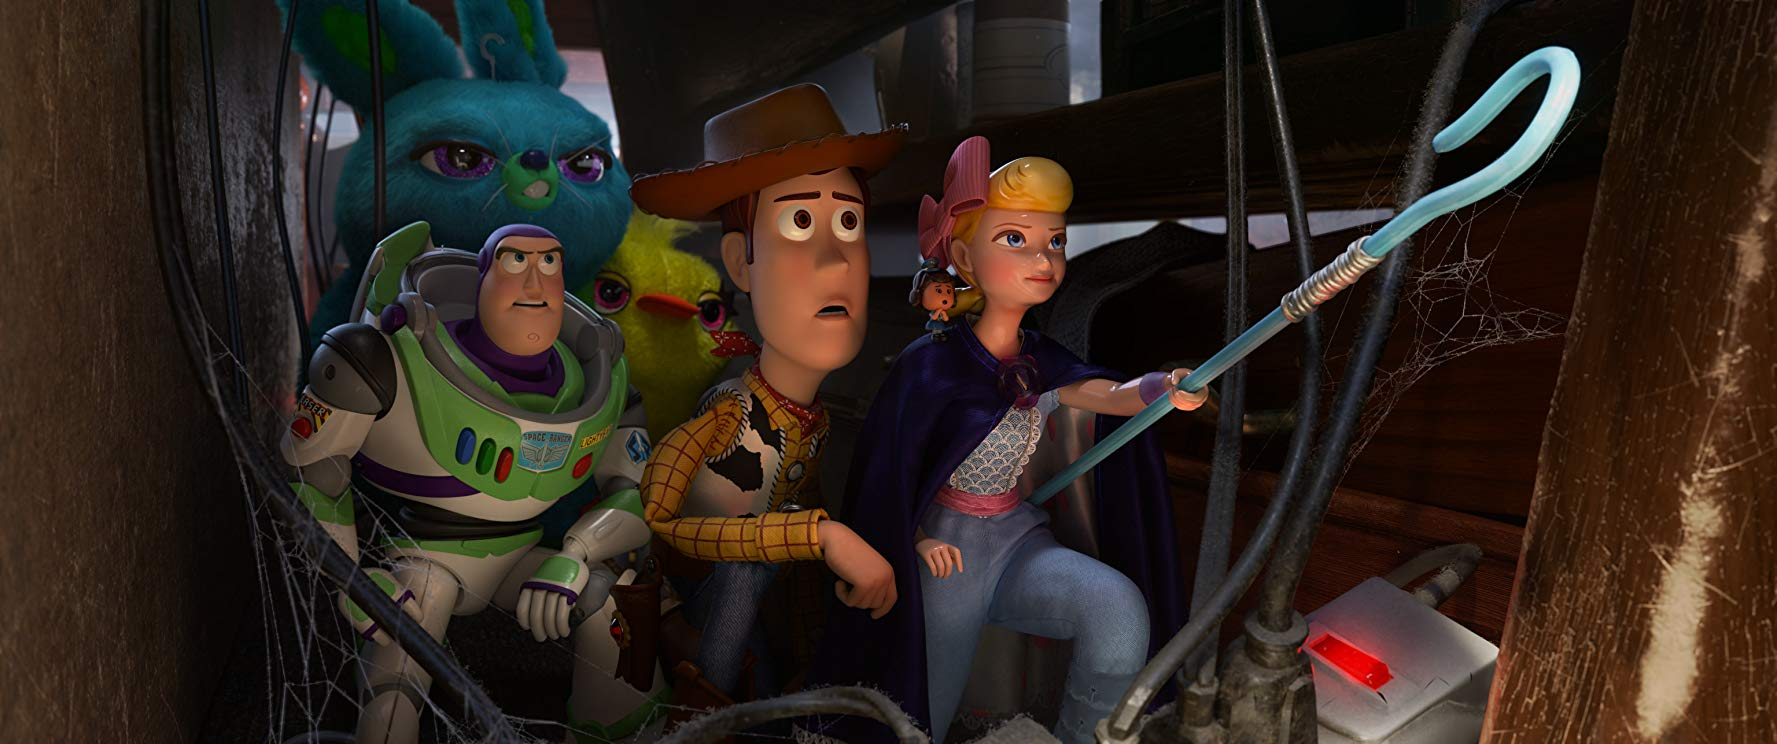 'Toy Story 4' Box Office Will Reach for the Sky With a $260 Million Global Debut